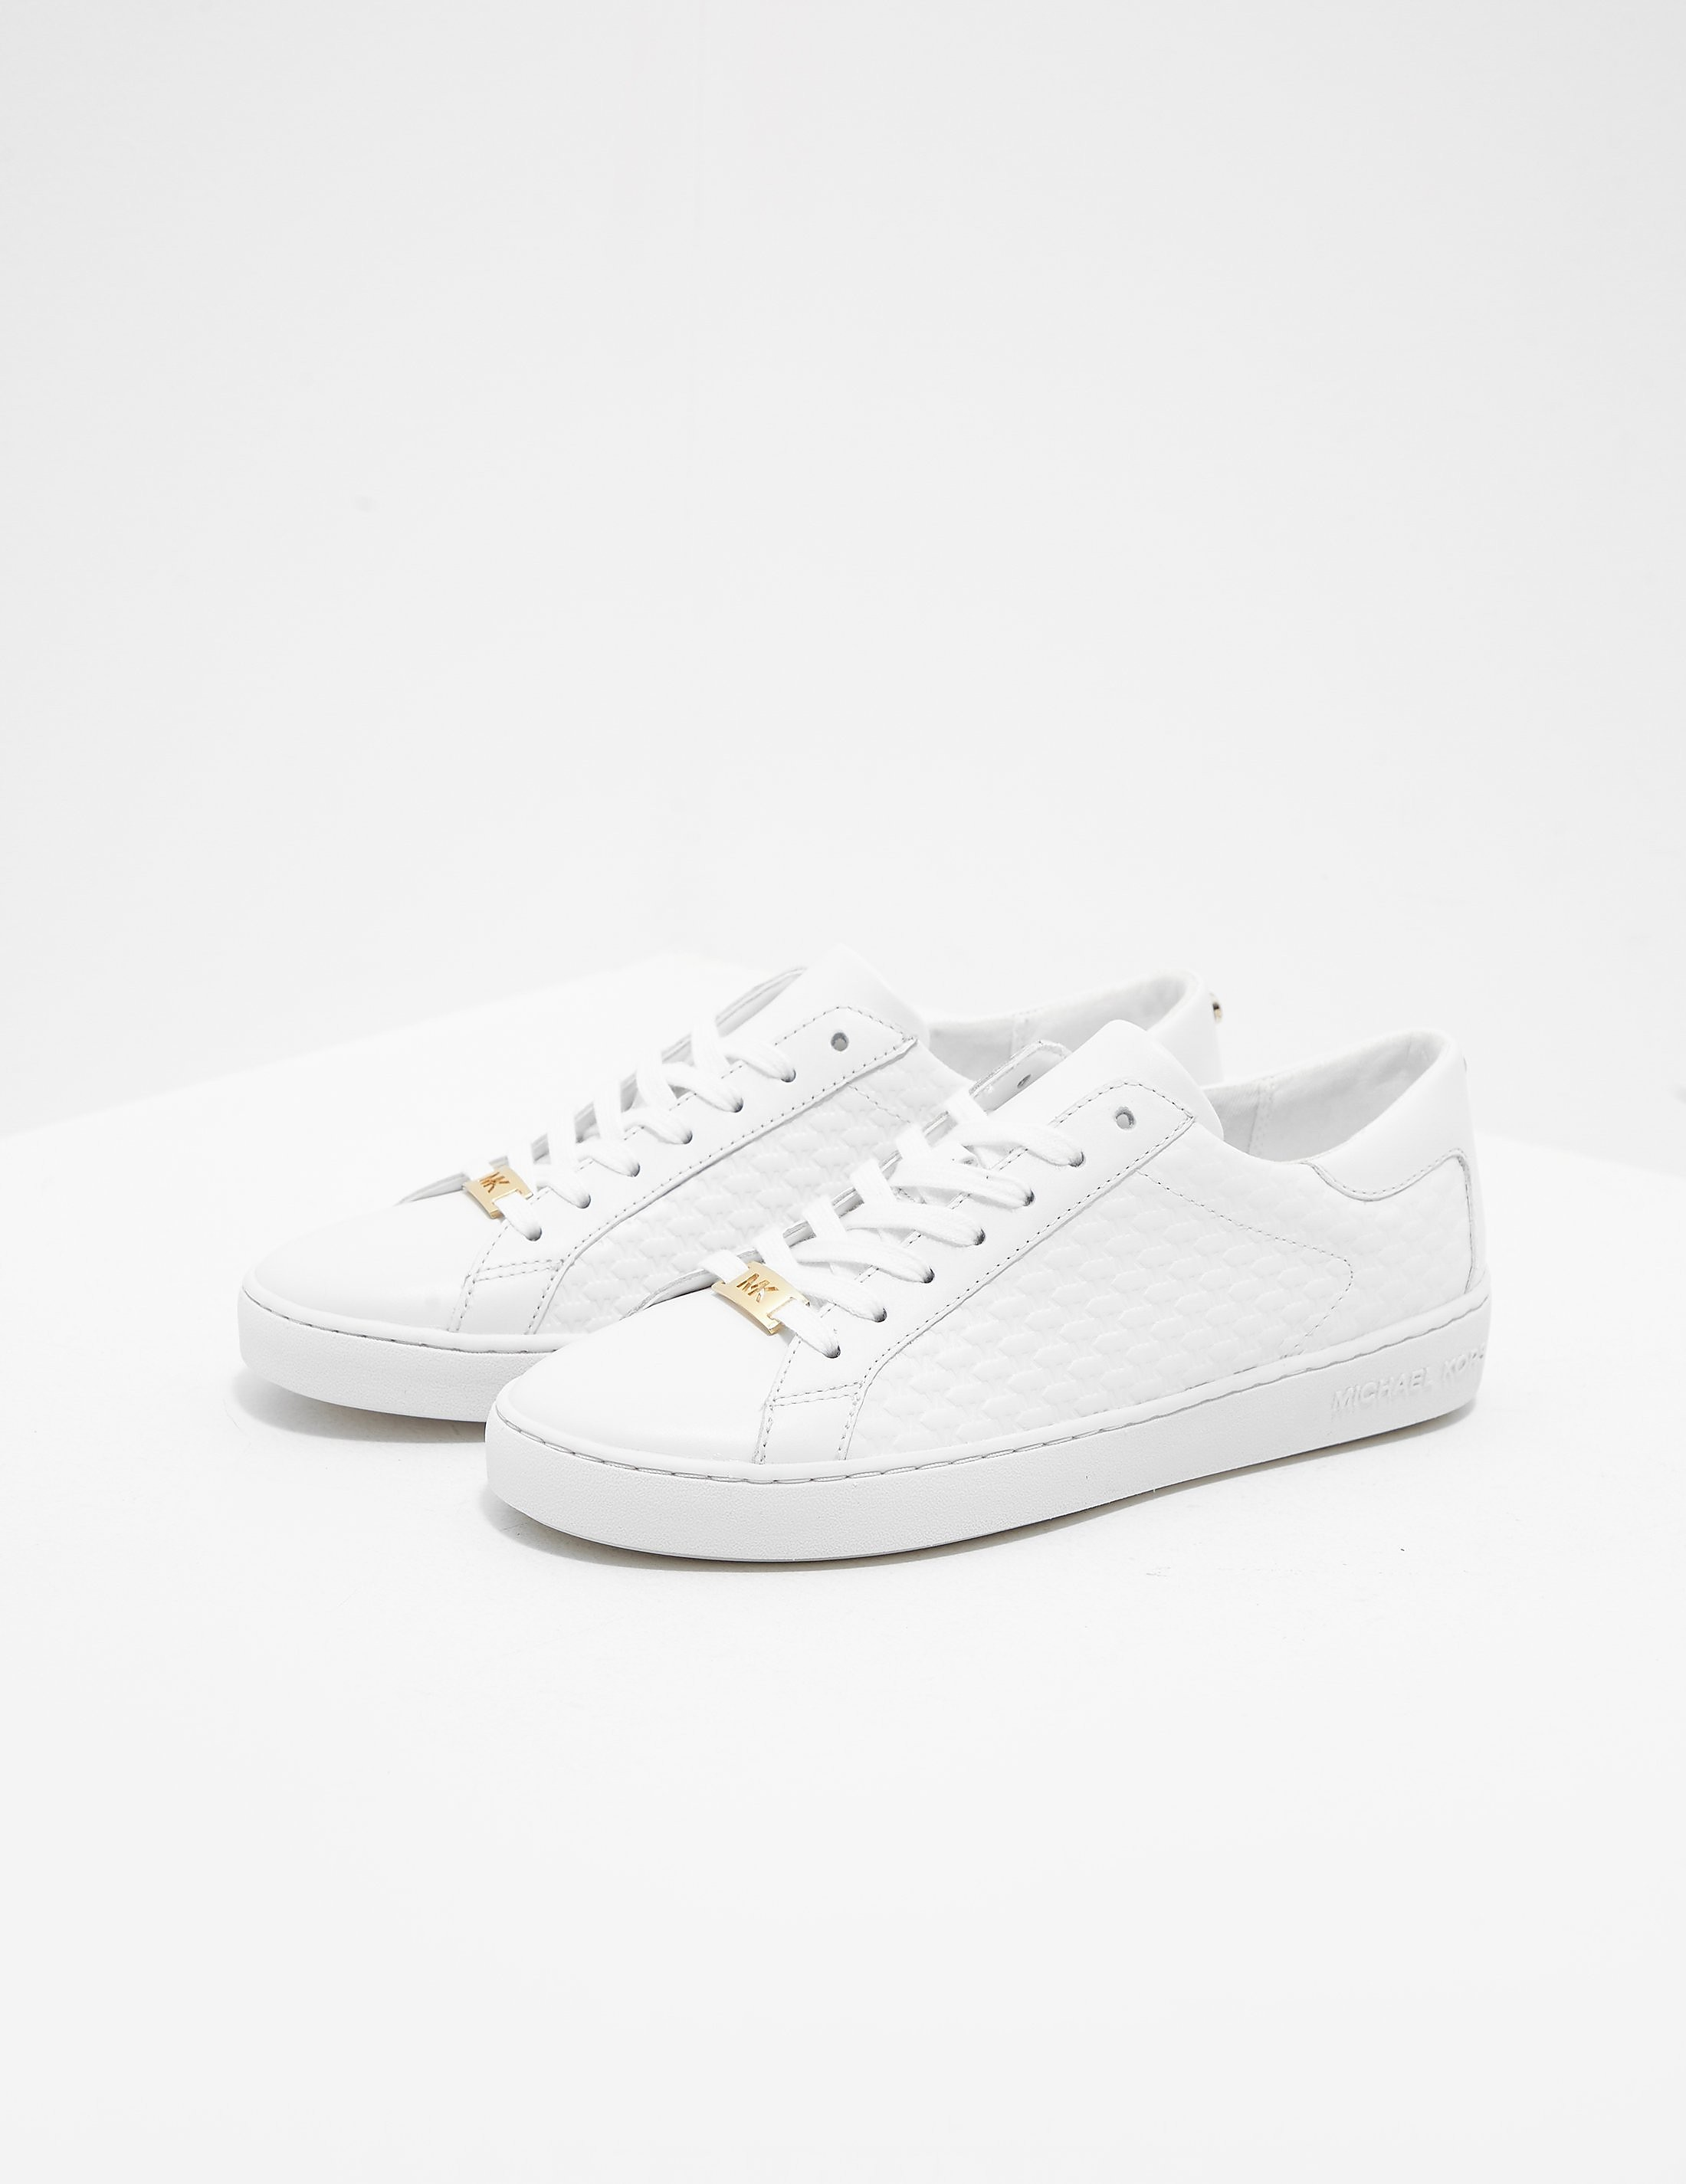 Michael Kors Colby Trainers